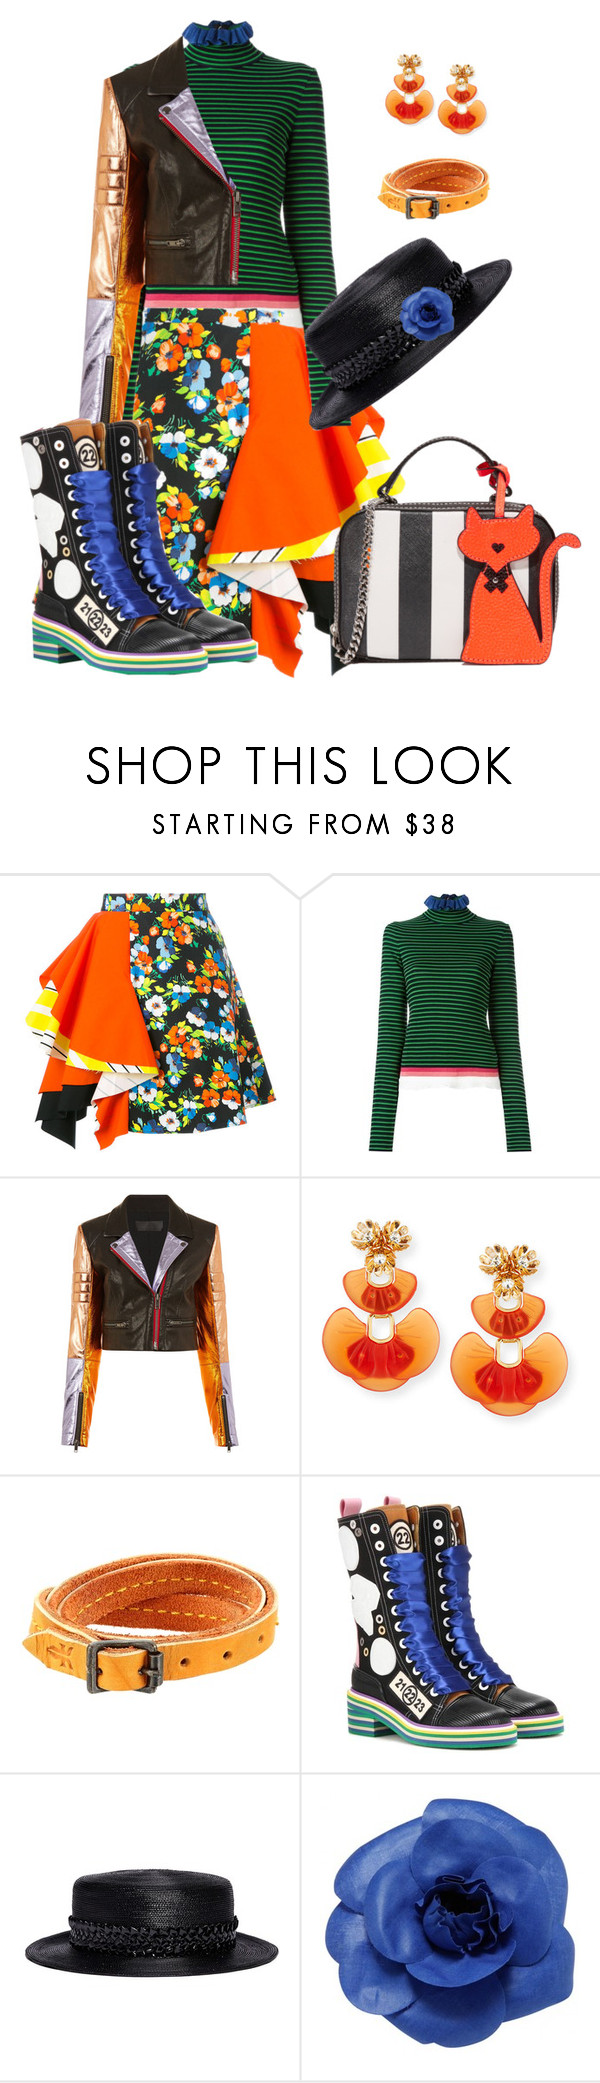 """Think Funky"" by glamourgrammy ❤ liked on Polyvore featuring MSGM, Haider Ackermann, Lele Sadoughi, Frye, Maison Margiela, Gigi Burris Millinery, Chanel and Milly"